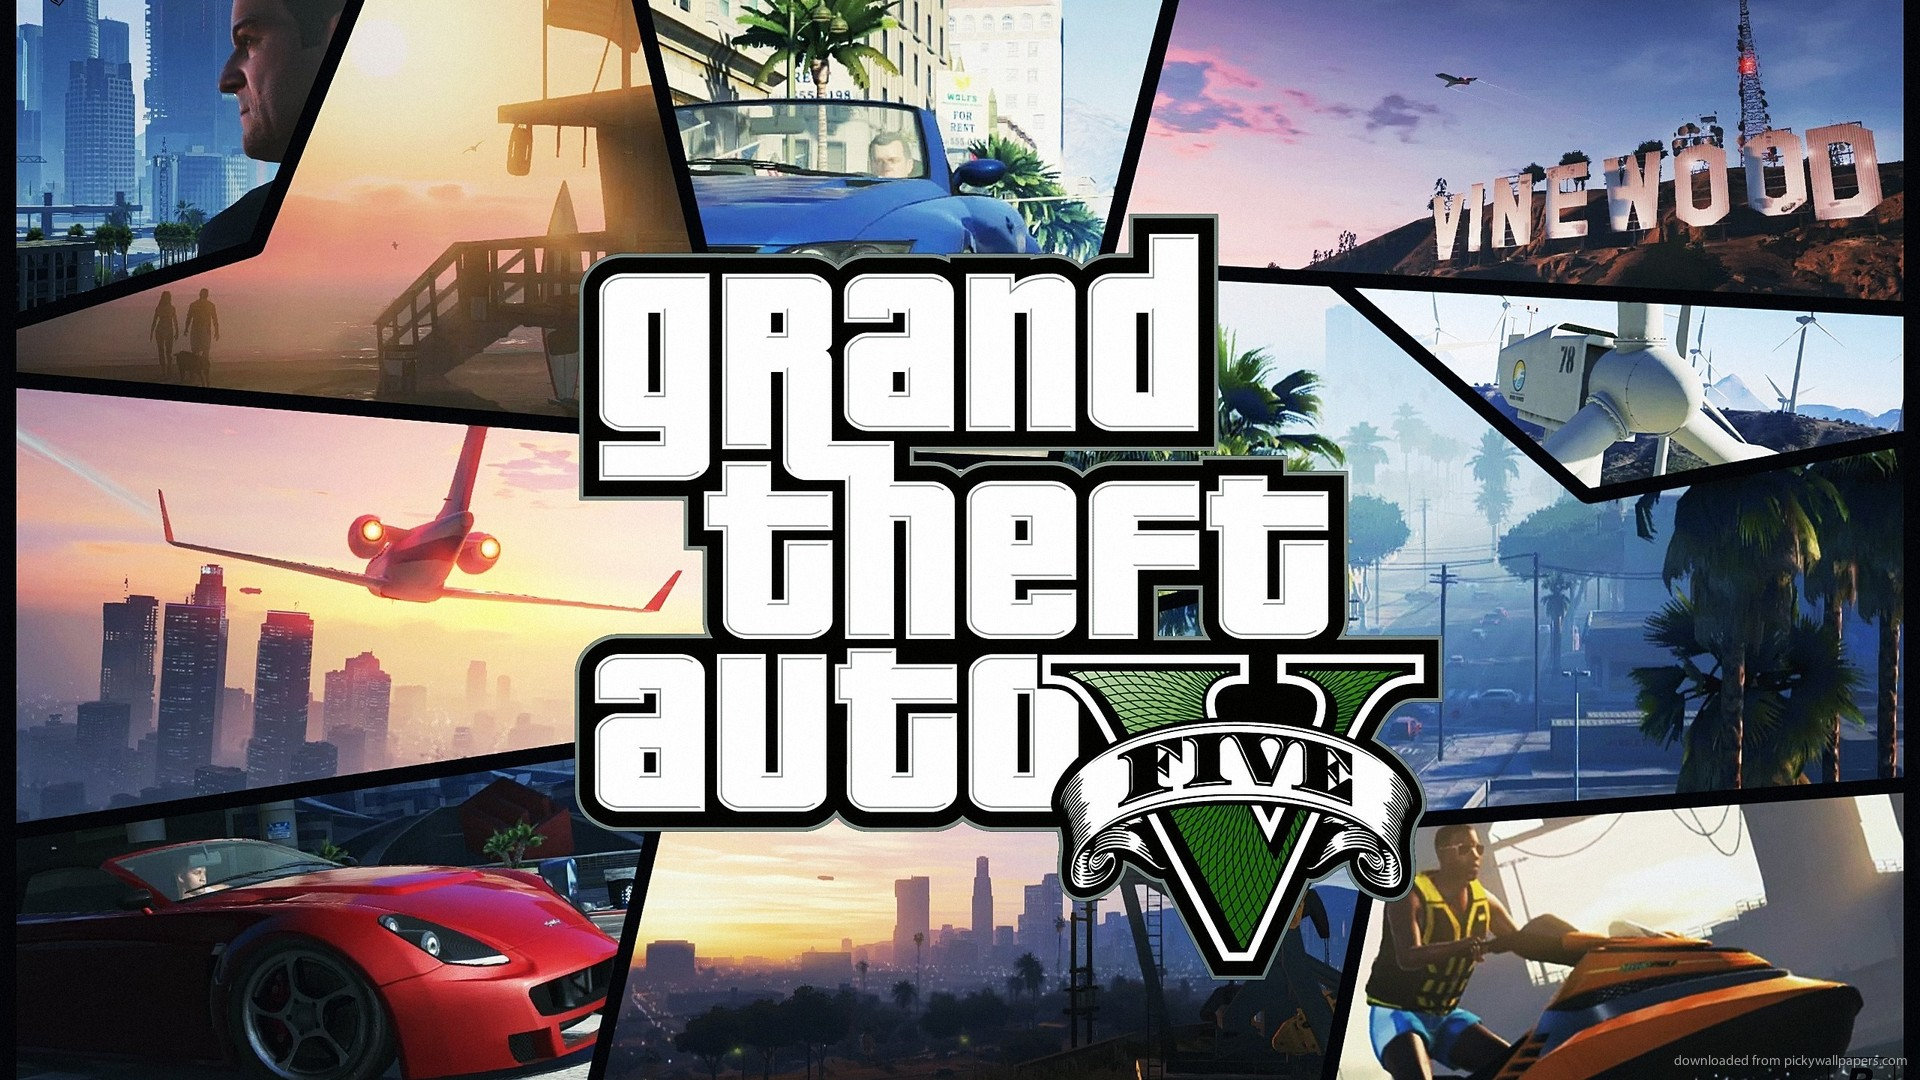 Free Download Gta V Wallpaper Hd Background 1920x1080 For